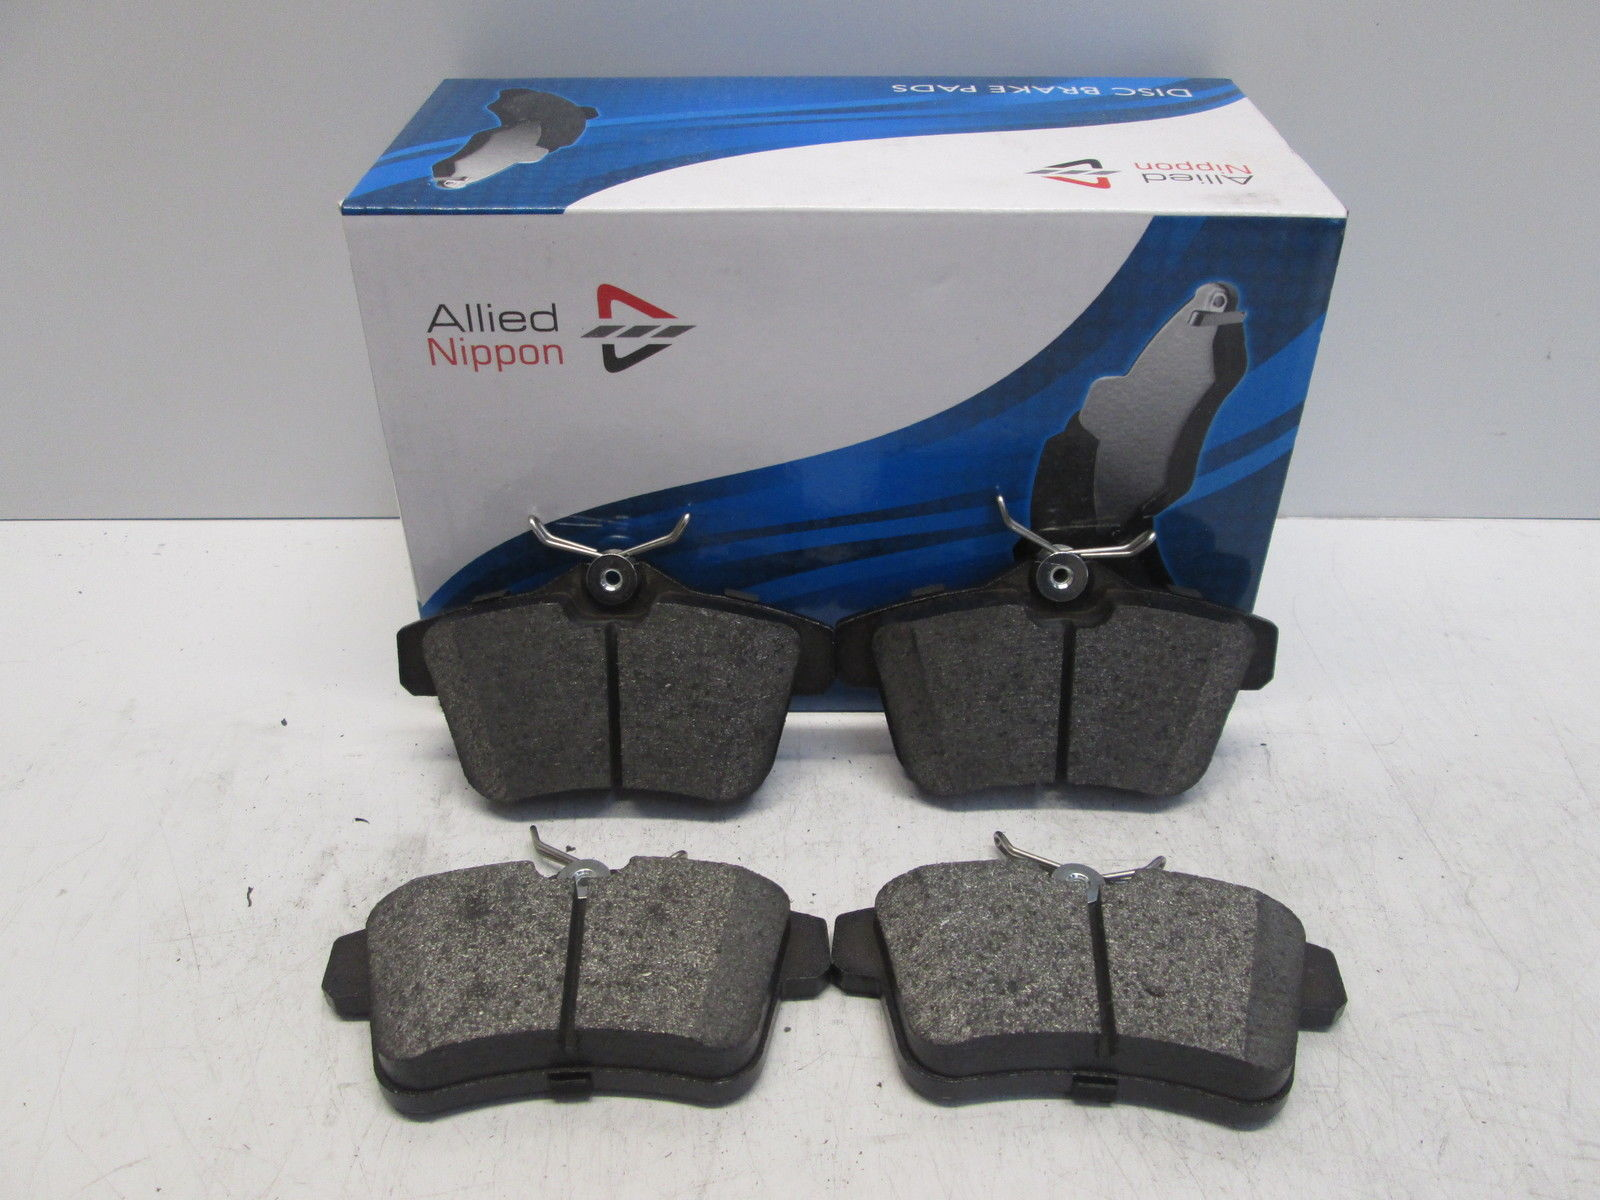 Peugeot 3008 1.6 HDi Genuine Allied Nippon Rear Brake Pads Set